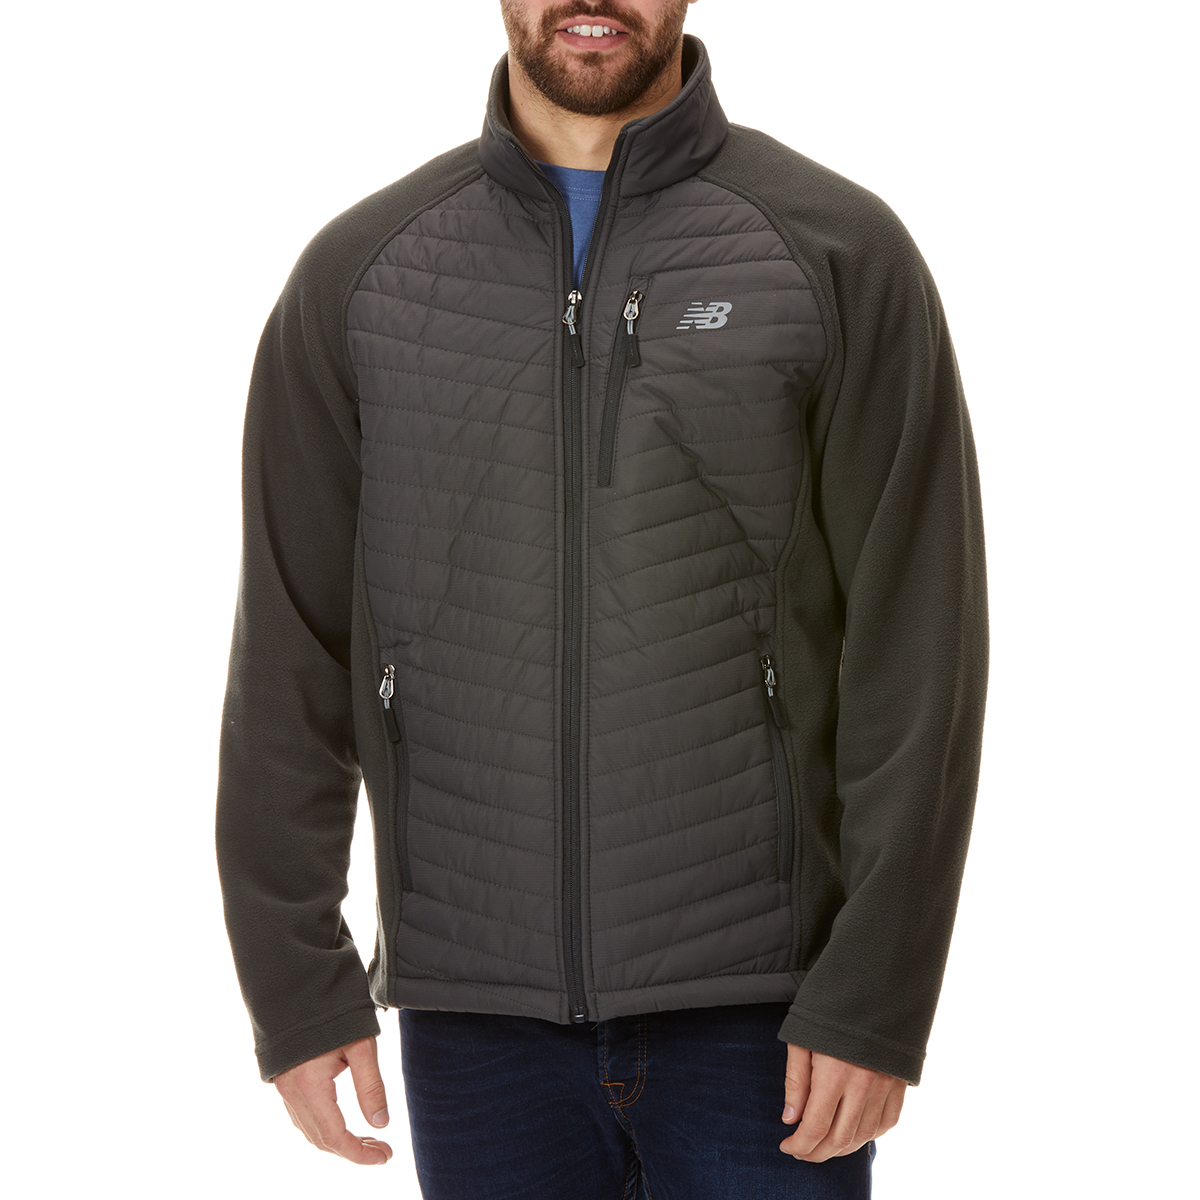 New Balance Men's Front Chevron Dobby Overlay Polar Fleece Jacket - Black, L